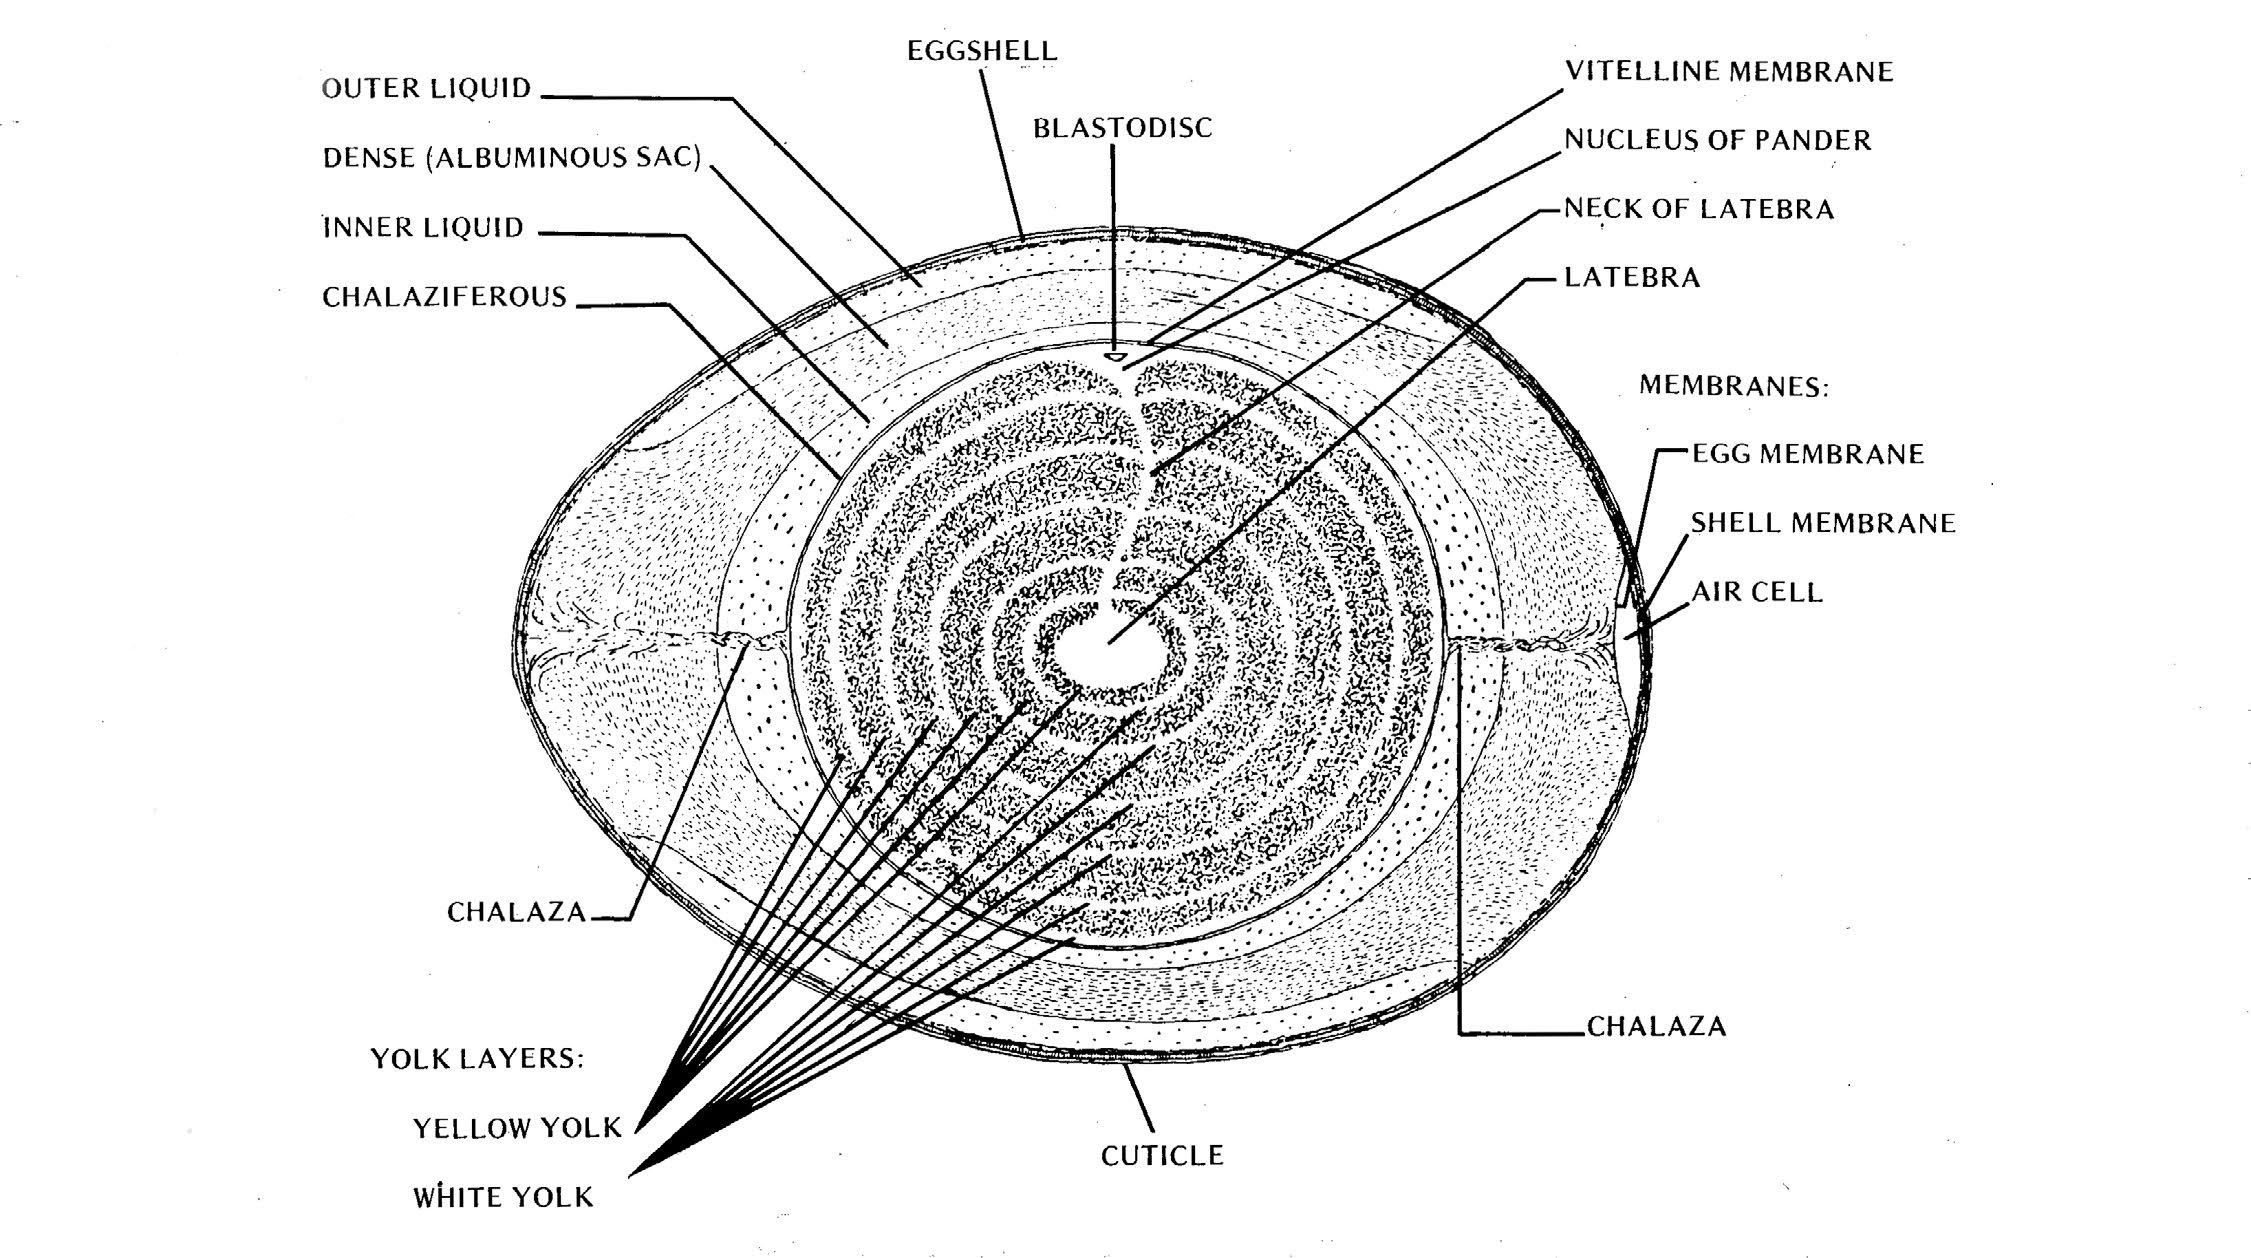 Figure of a hen's egg shown cross-sectioned. The center is the latebra, the layer immediately followin gis the yellow yolk, then the white yolk. Then there is the neck of latebra which runs from the latebra to the nucleus of pander. Sitting n the nucleus of pander is the blastodisc. Then is the vitelline membrane. Running from the vitelline membrane to the air cell and egg membrane (on both ends of the egg) is the chalaza. Tight past the vitelline membrane is the Chalaziferous, the inner liquid, the dense albuminous sac, and the outer liquid. All of t his is contained within the egg shell which is surrounded by a cuticle.